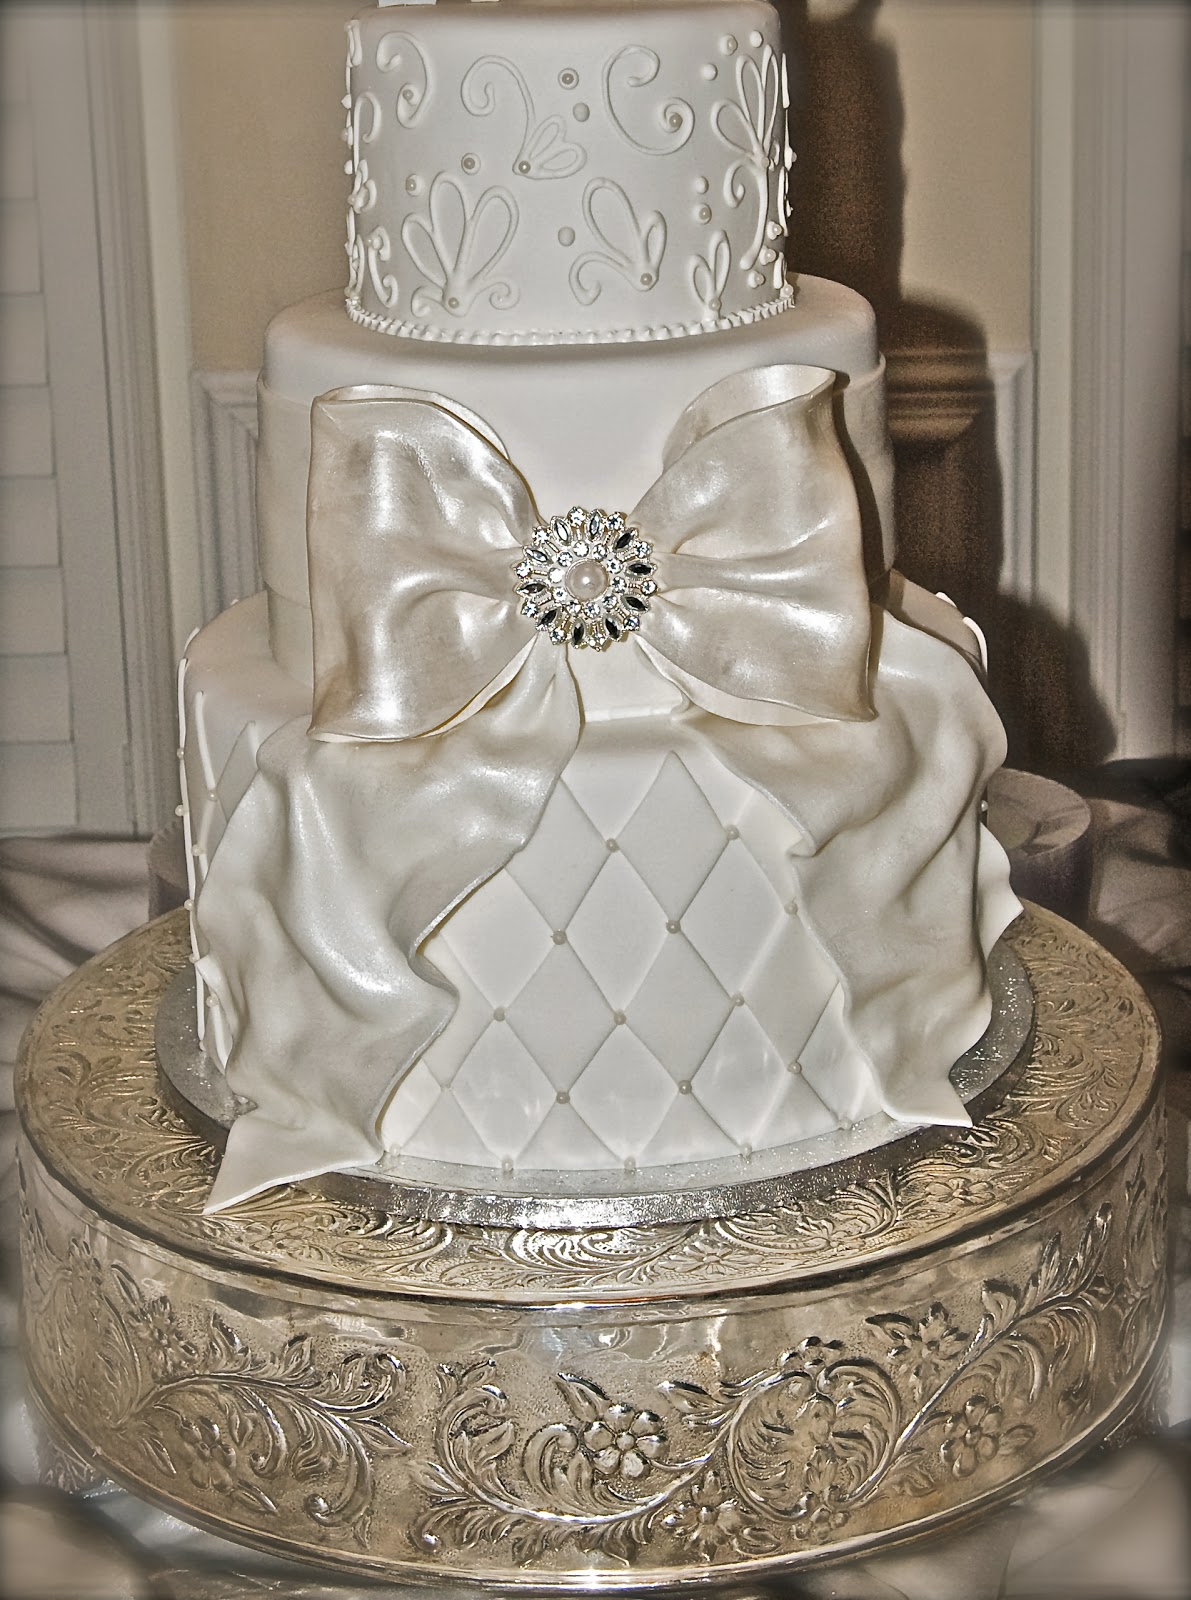 Big Wedding Cake Images : The Good Apple: Big Bow Wedding Cake